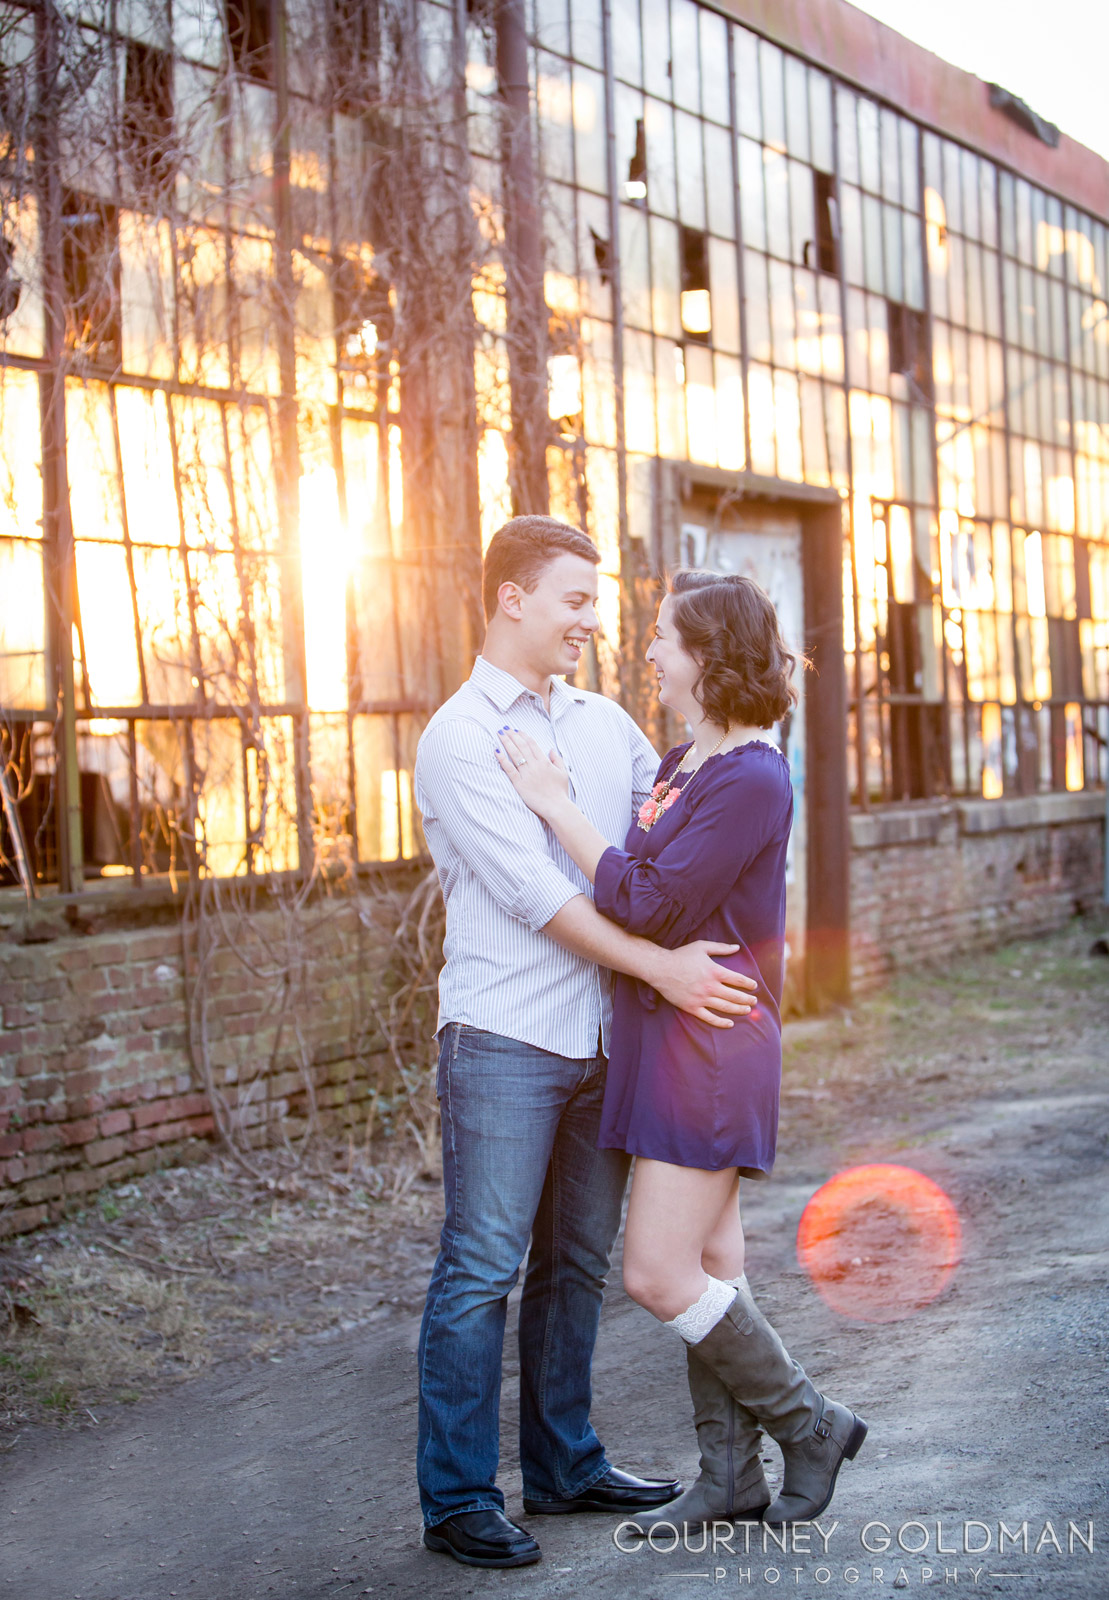 Atlanta-Couples-Engagement-Proposal-Photography-by-Courtney-Goldman-12.jpg